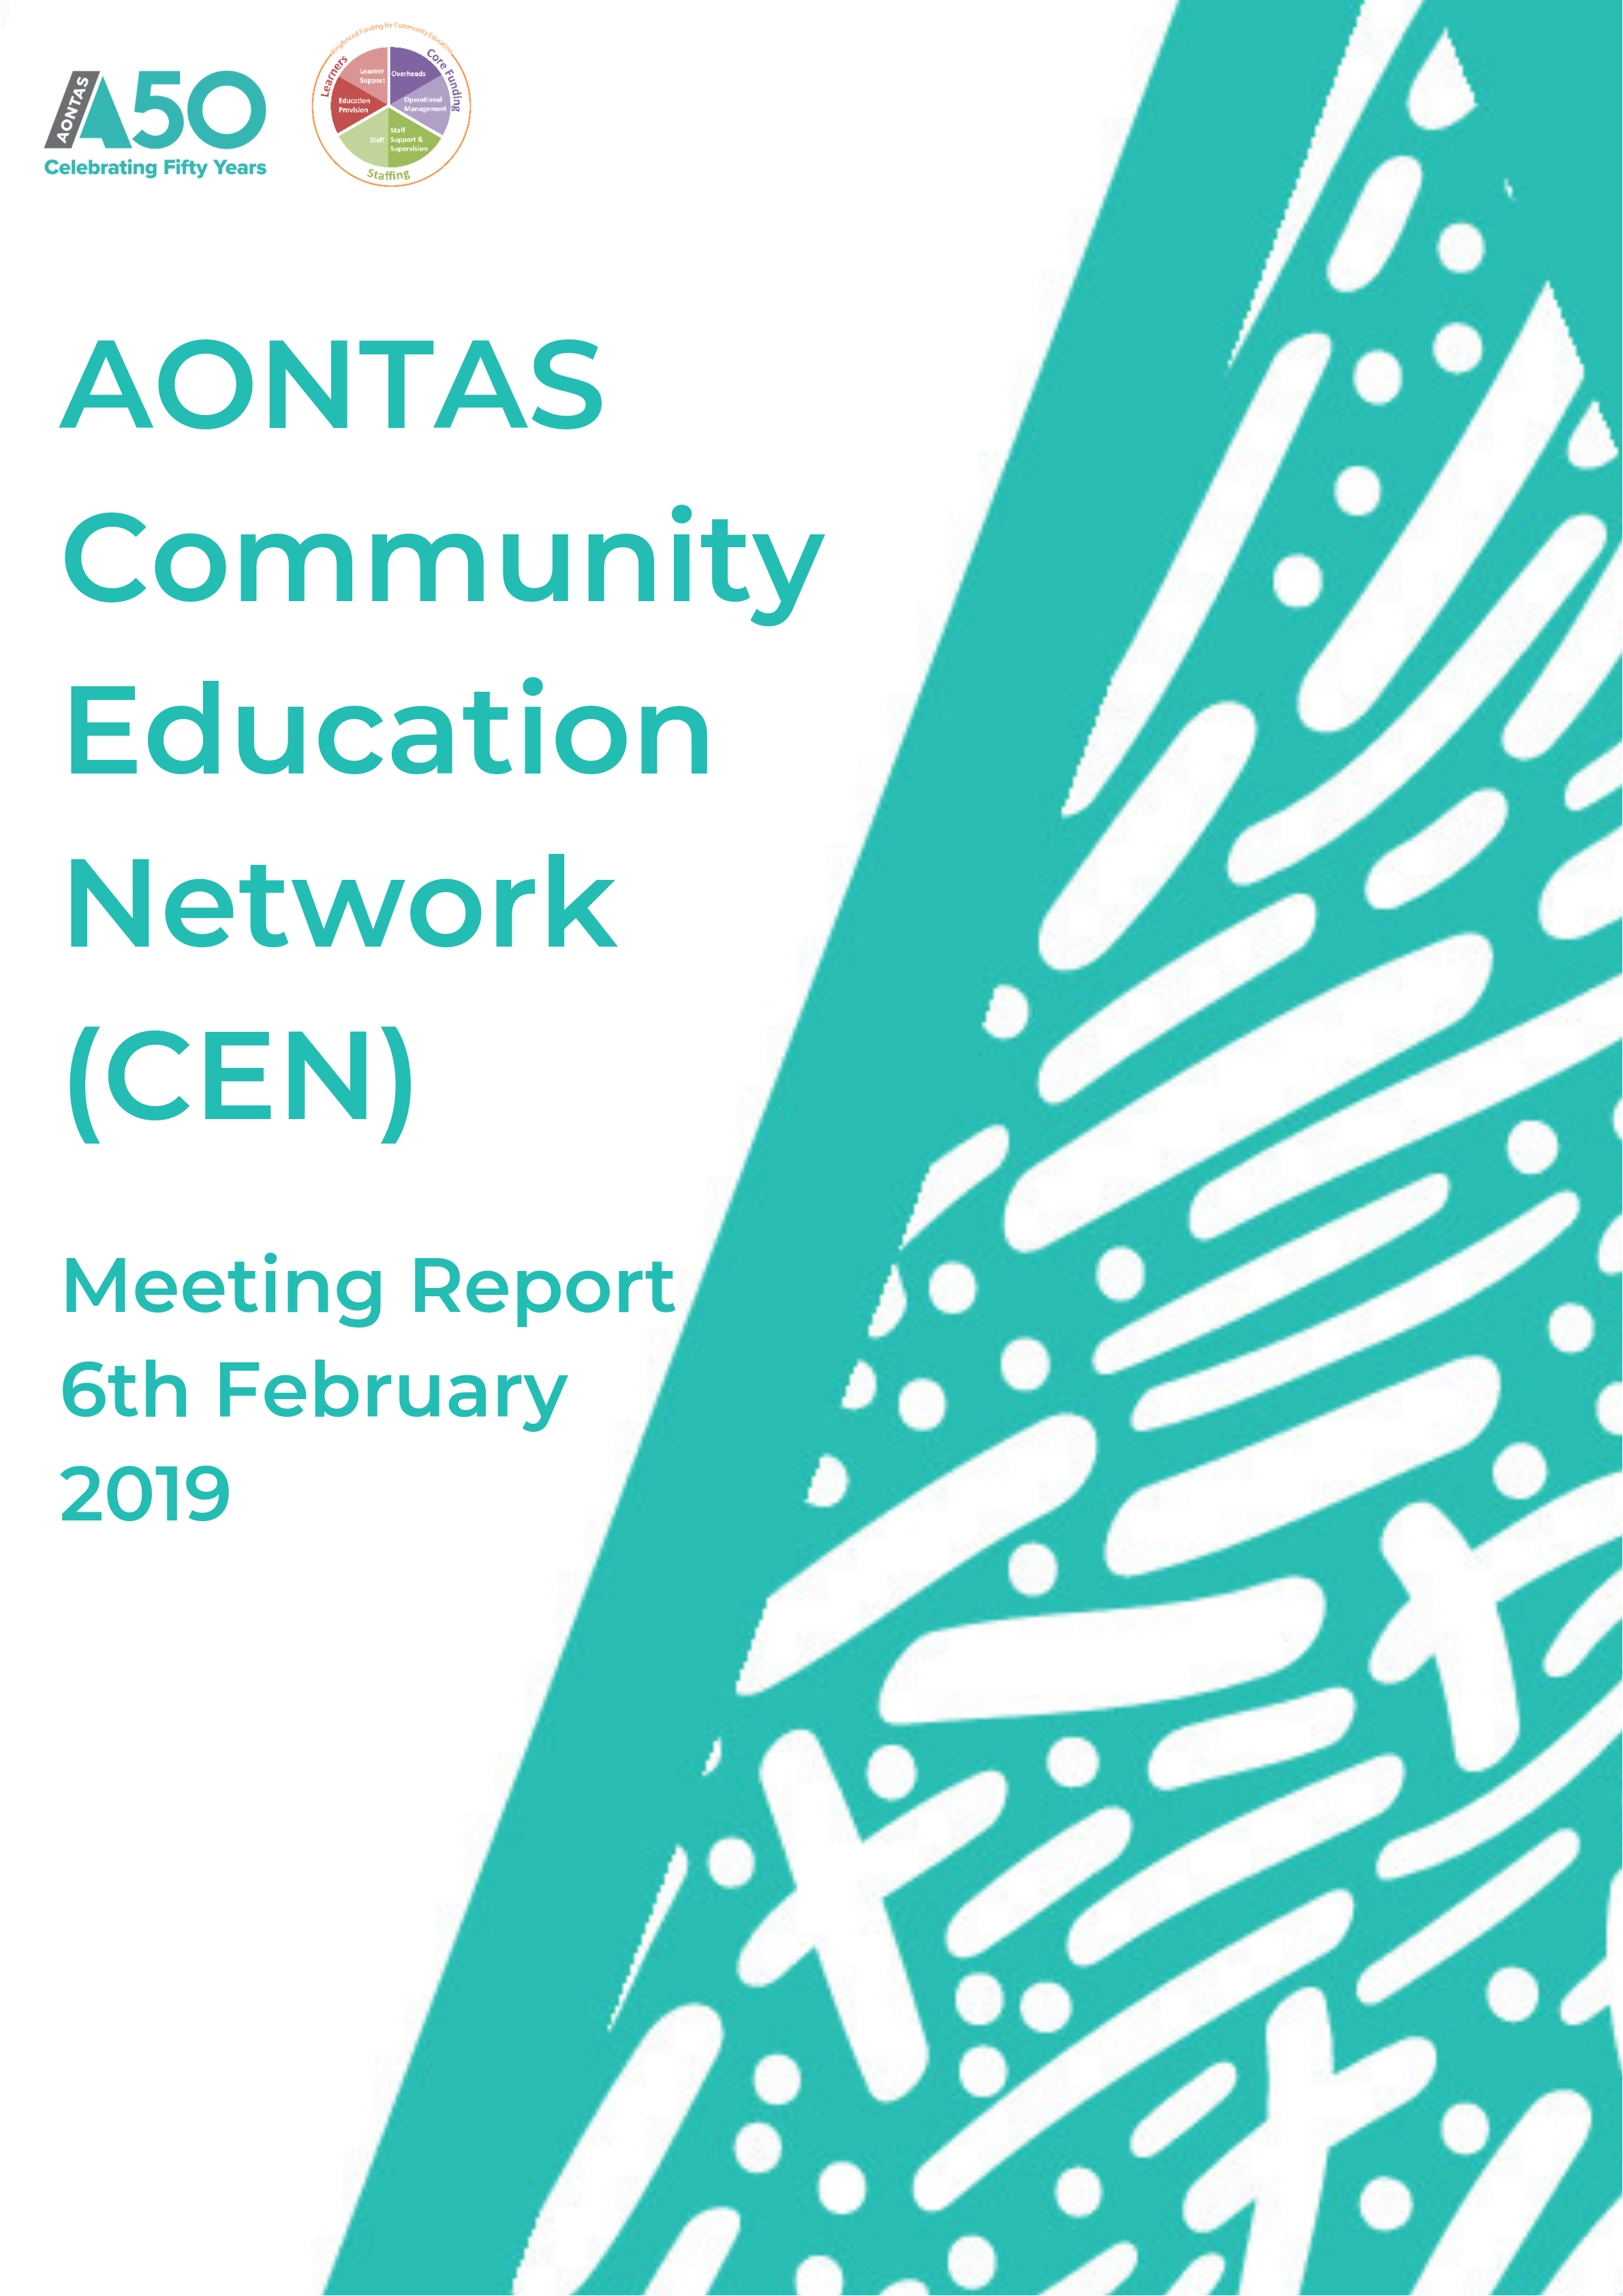 AONTAS CEN Meeting Report - February 2019 pdf